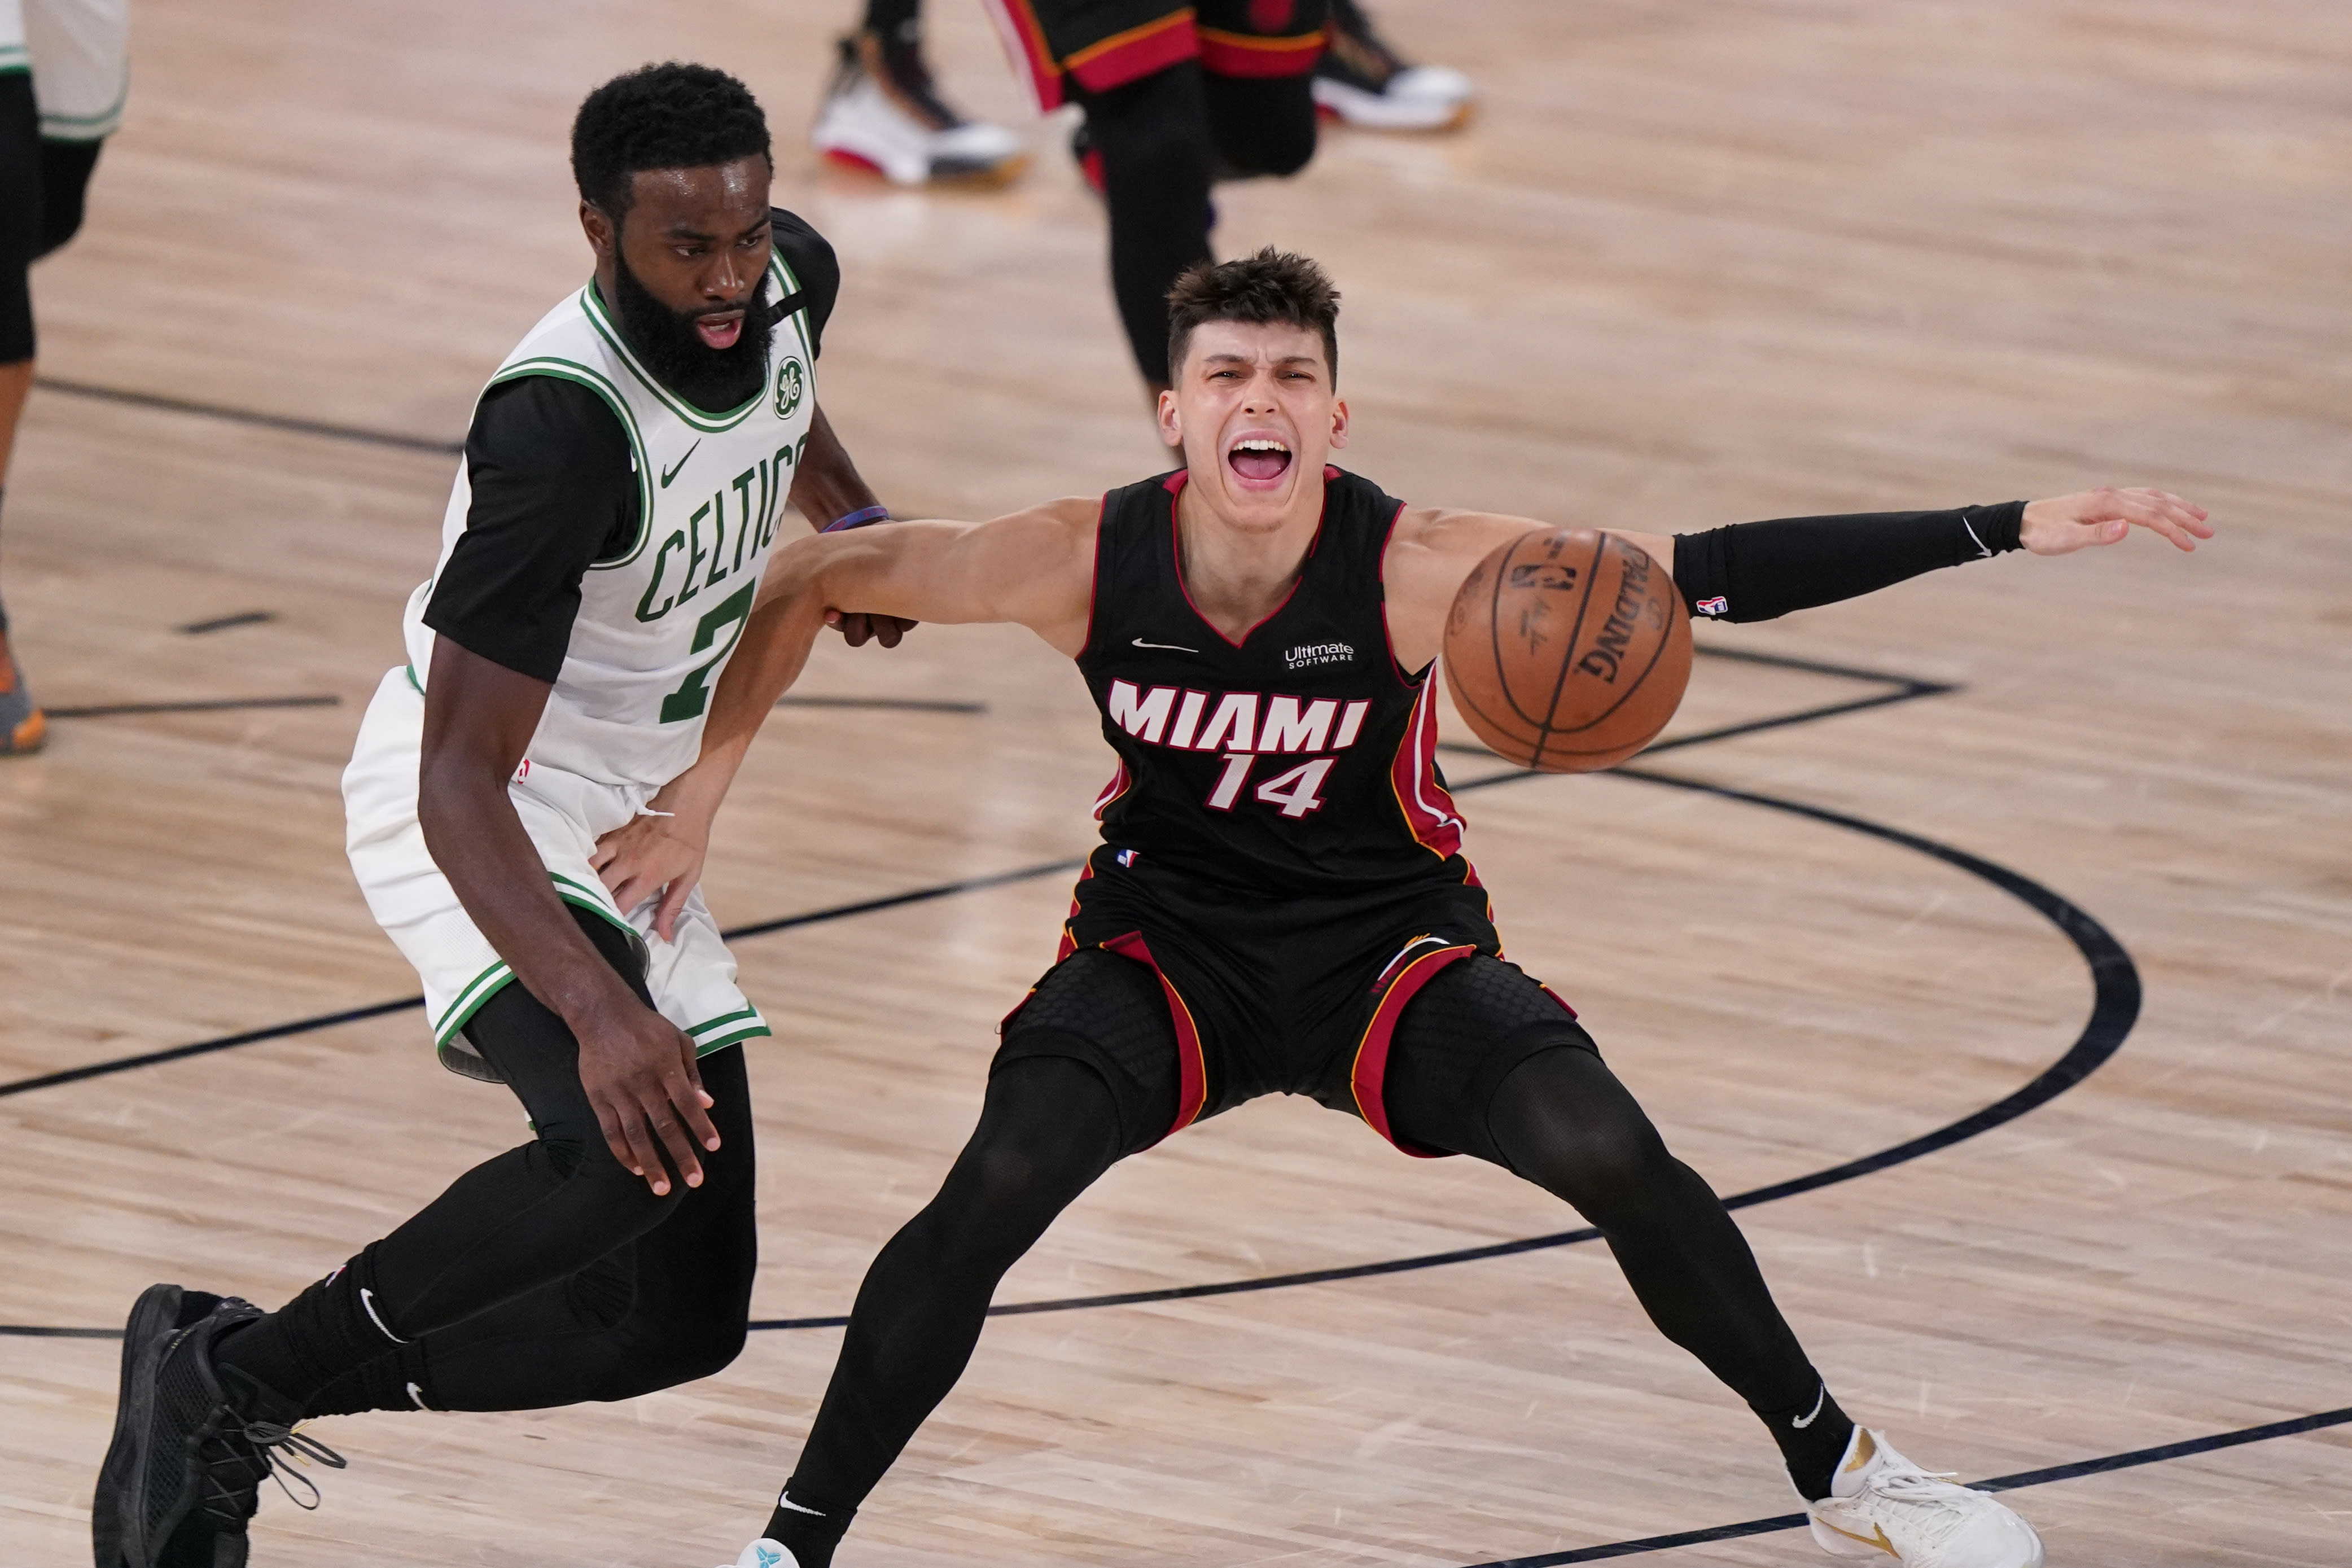 Boston Celtics' Jaylen Brown (7) stems the ball from Miami Heat's Tyler Herro (14) during the second half of an NBA conference final playoff basketball game Sunday, Sept. 27, 2020, in Lake Buena Vista, Fla. (AP Photo/Mark J. Terrill)